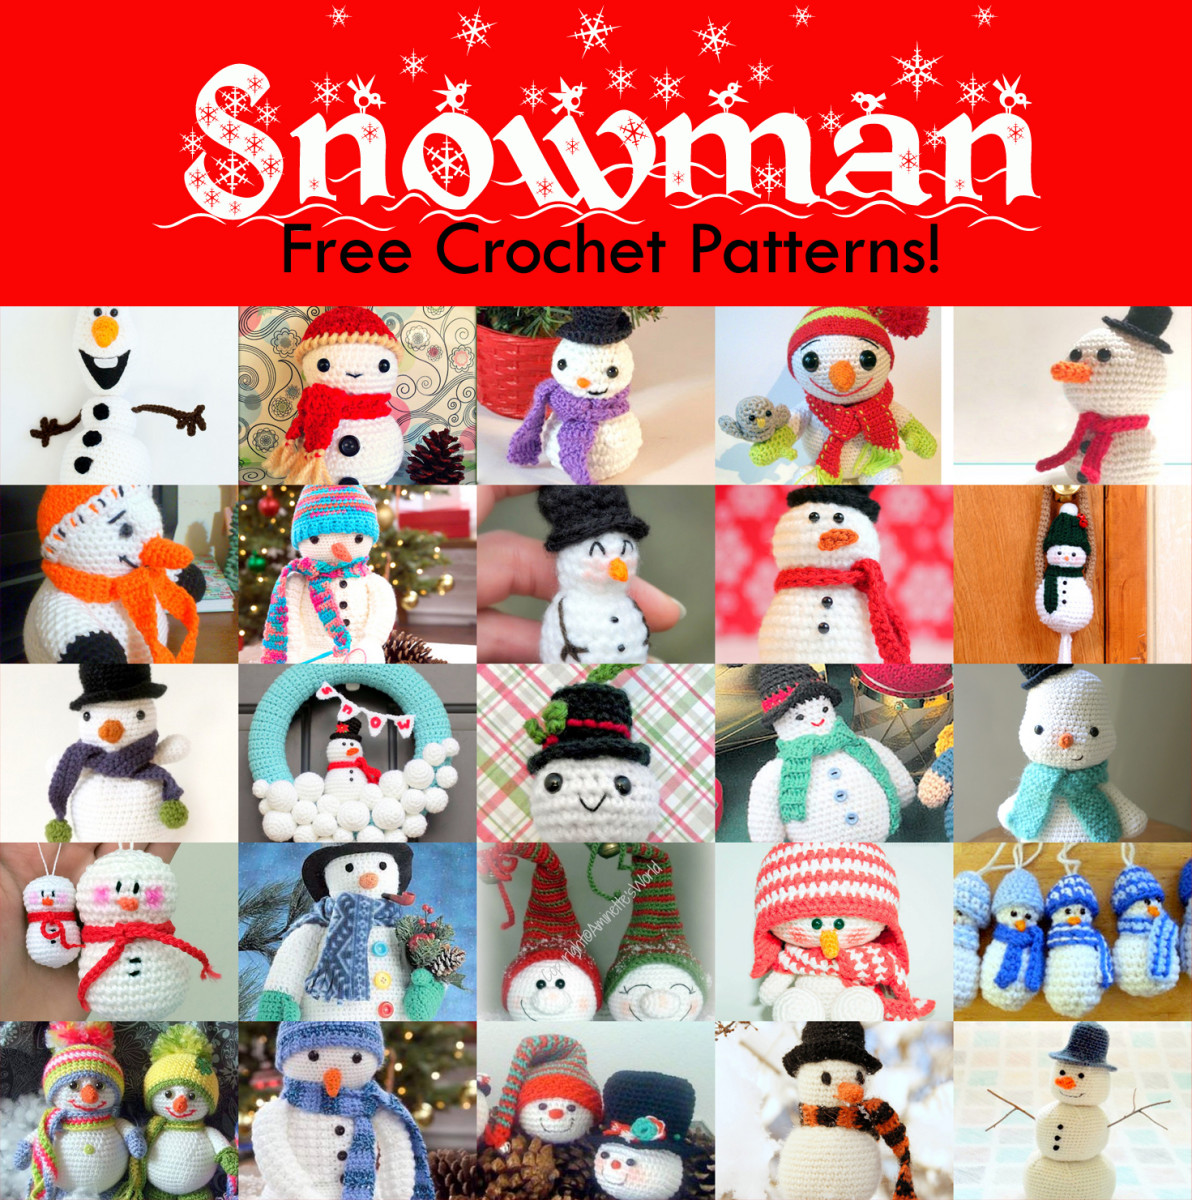 Free amigurumi snowman crochet patterns!